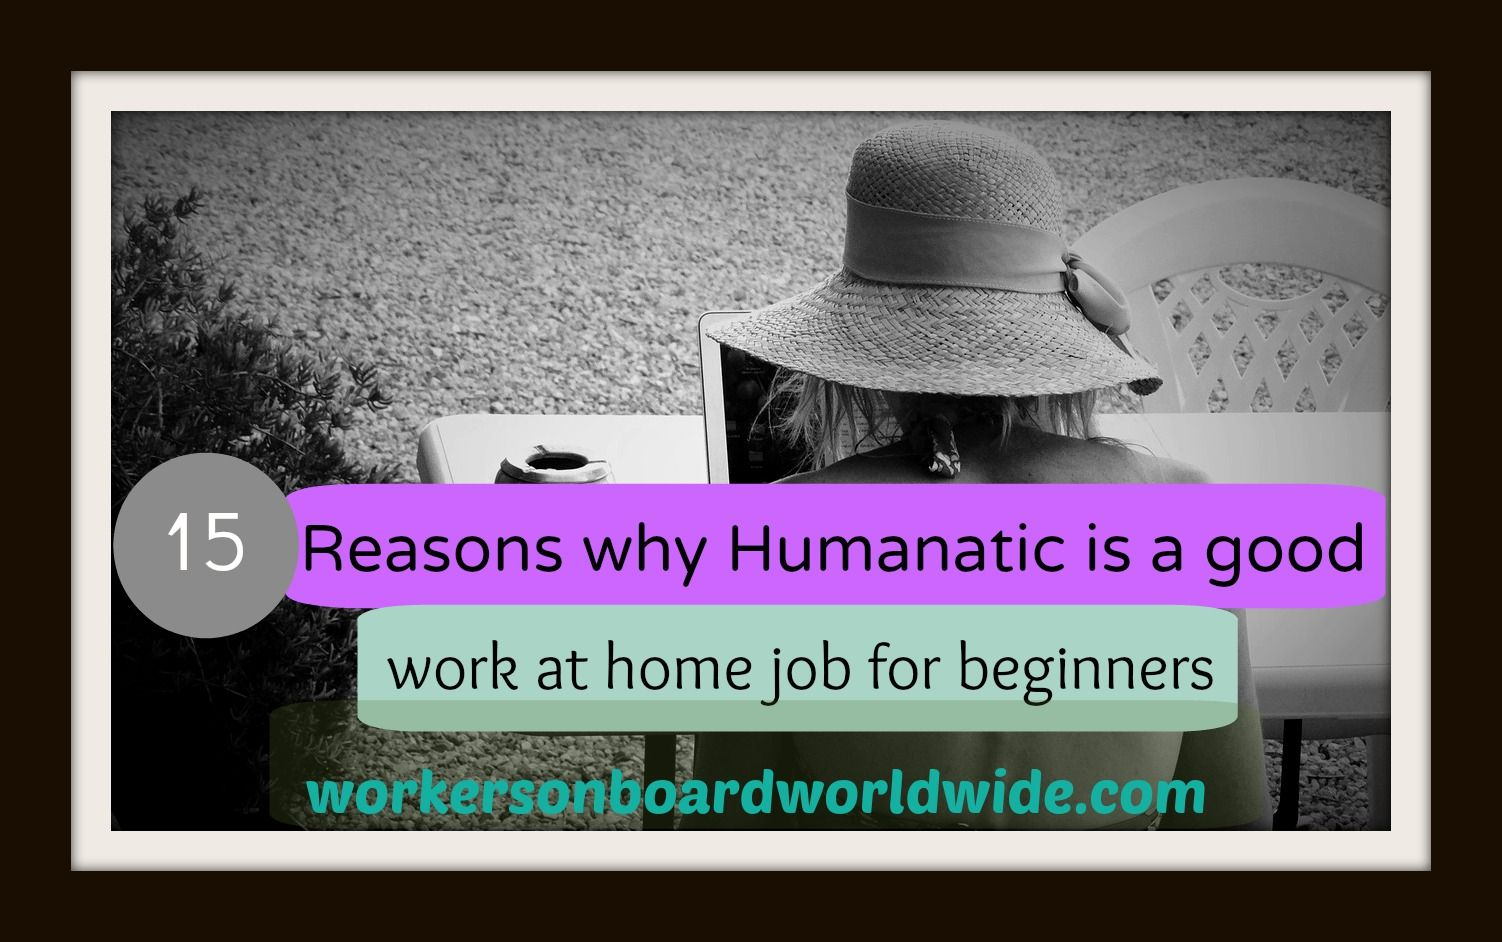 Many people desire a nonphone work at home job without